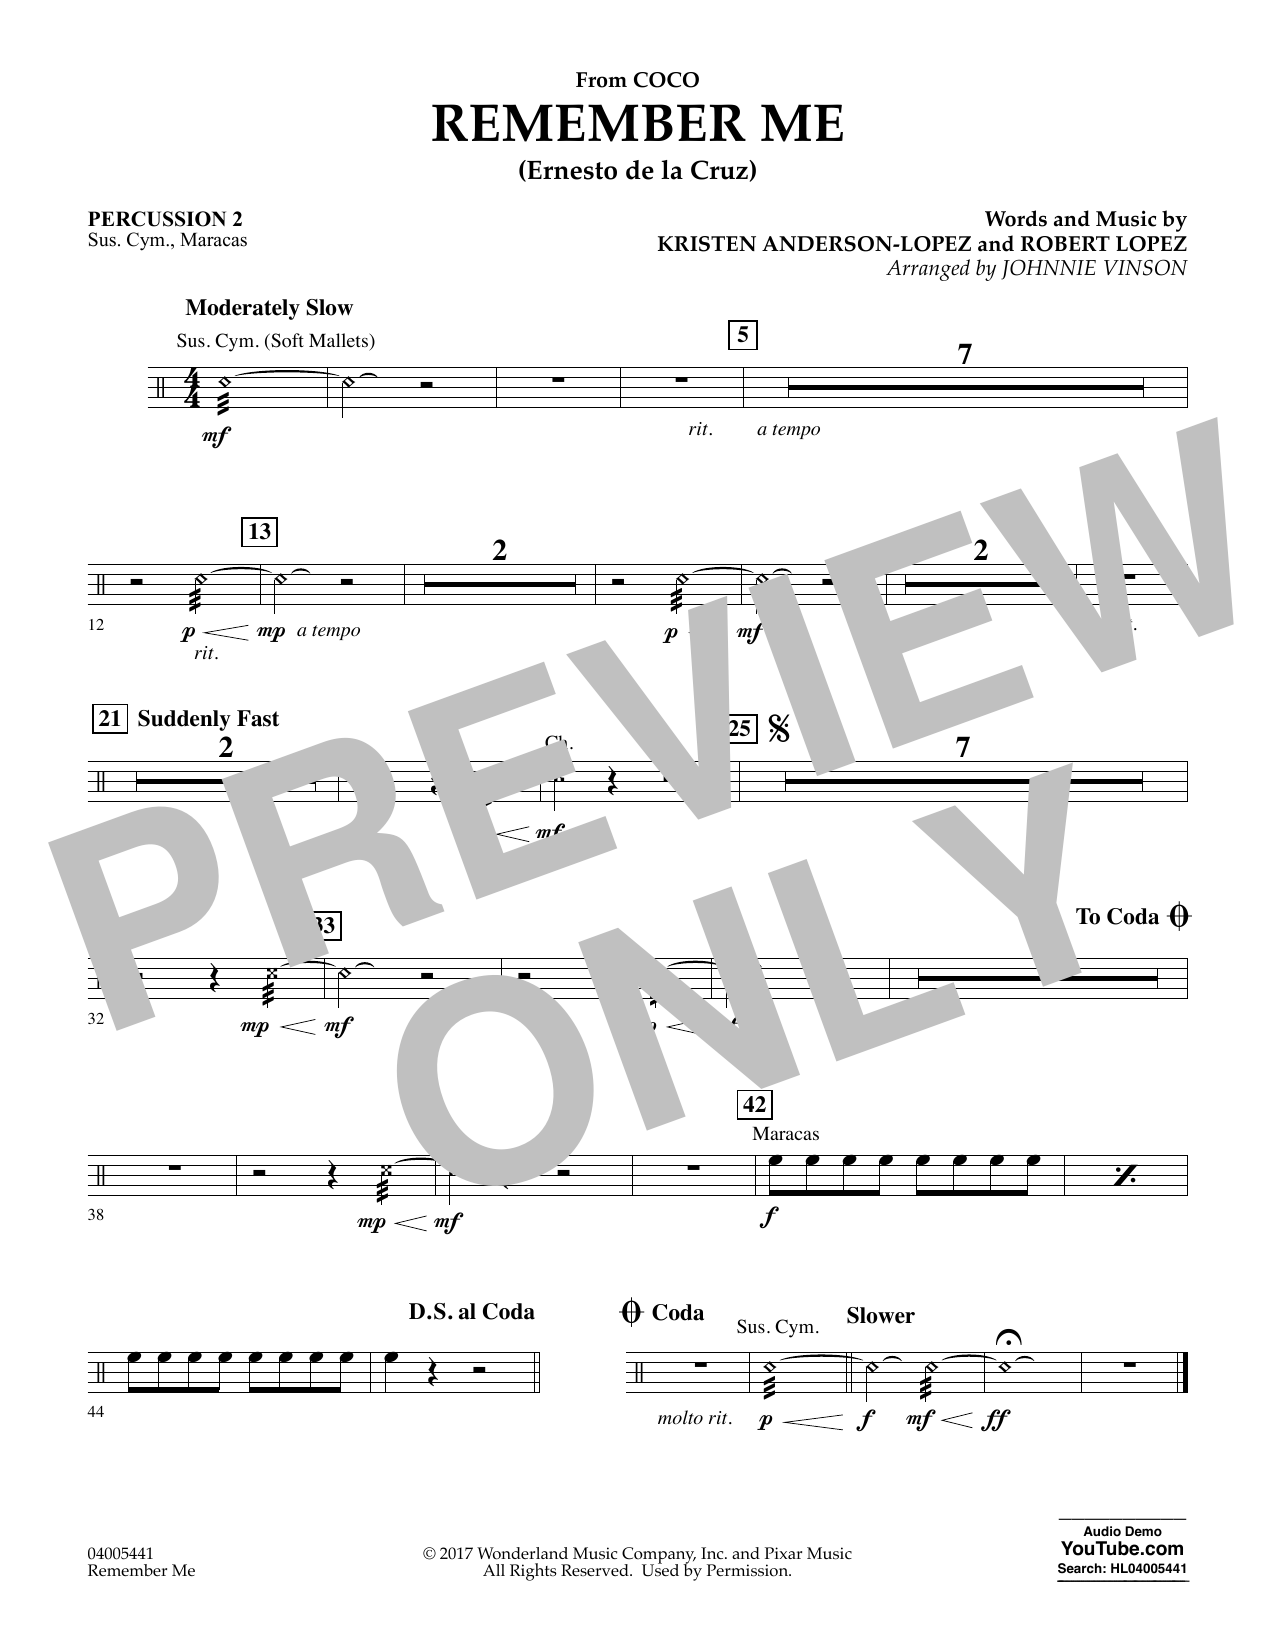 Kristen Anderson-Lopez & Robert Lopez Remember Me (from Coco) (arr. Johnnie Vinson) - Percussion 2 sheet music notes and chords. Download Printable PDF.